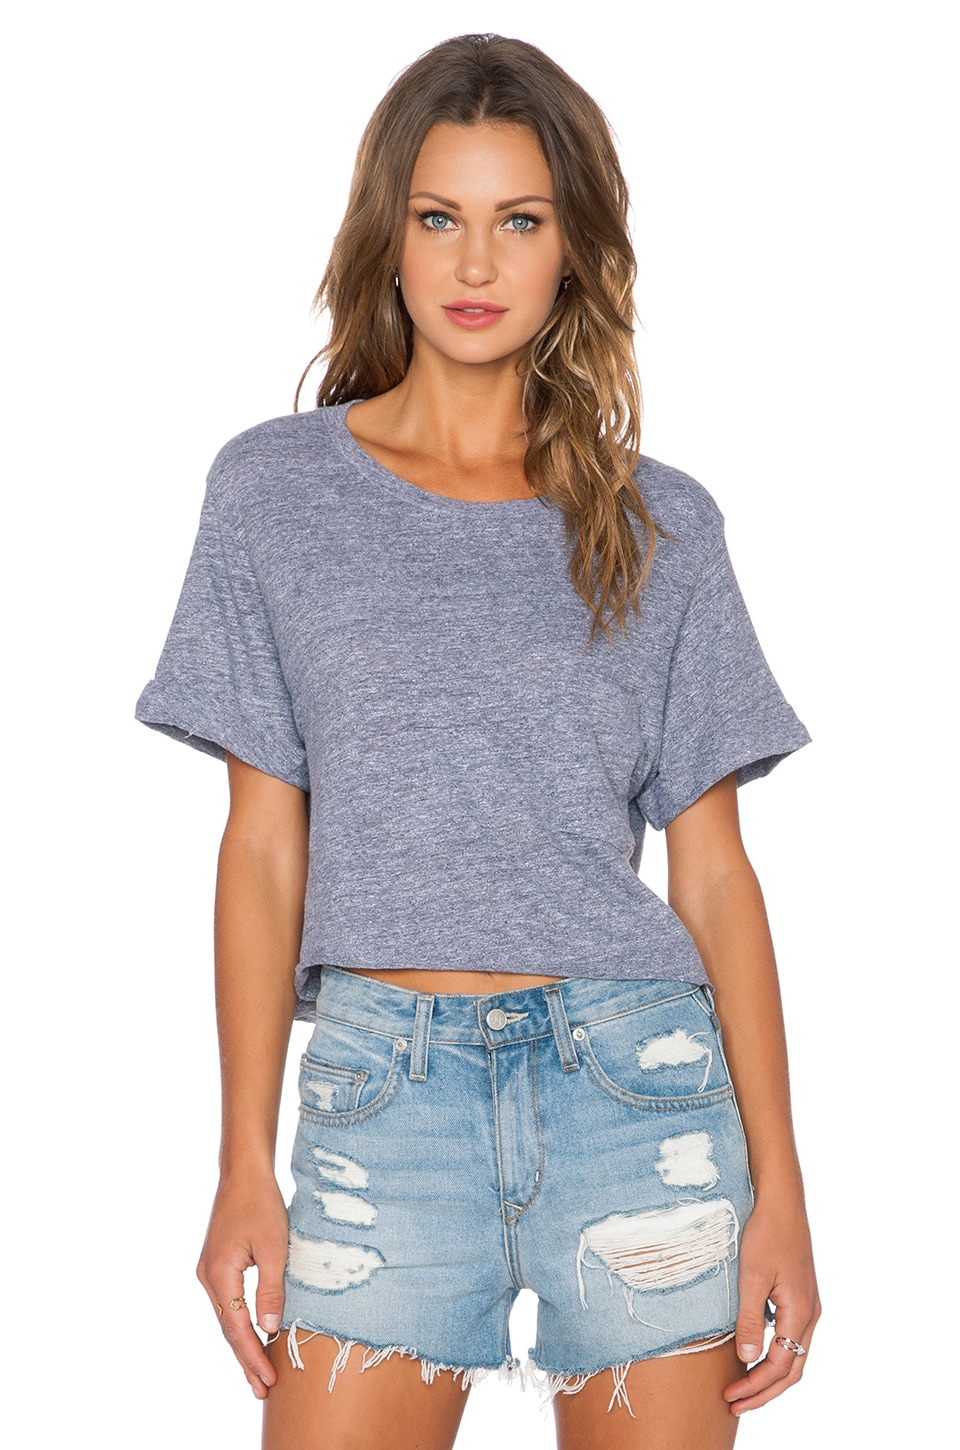 MONROW Novelty Cropped Crew Neck Tee in Granite